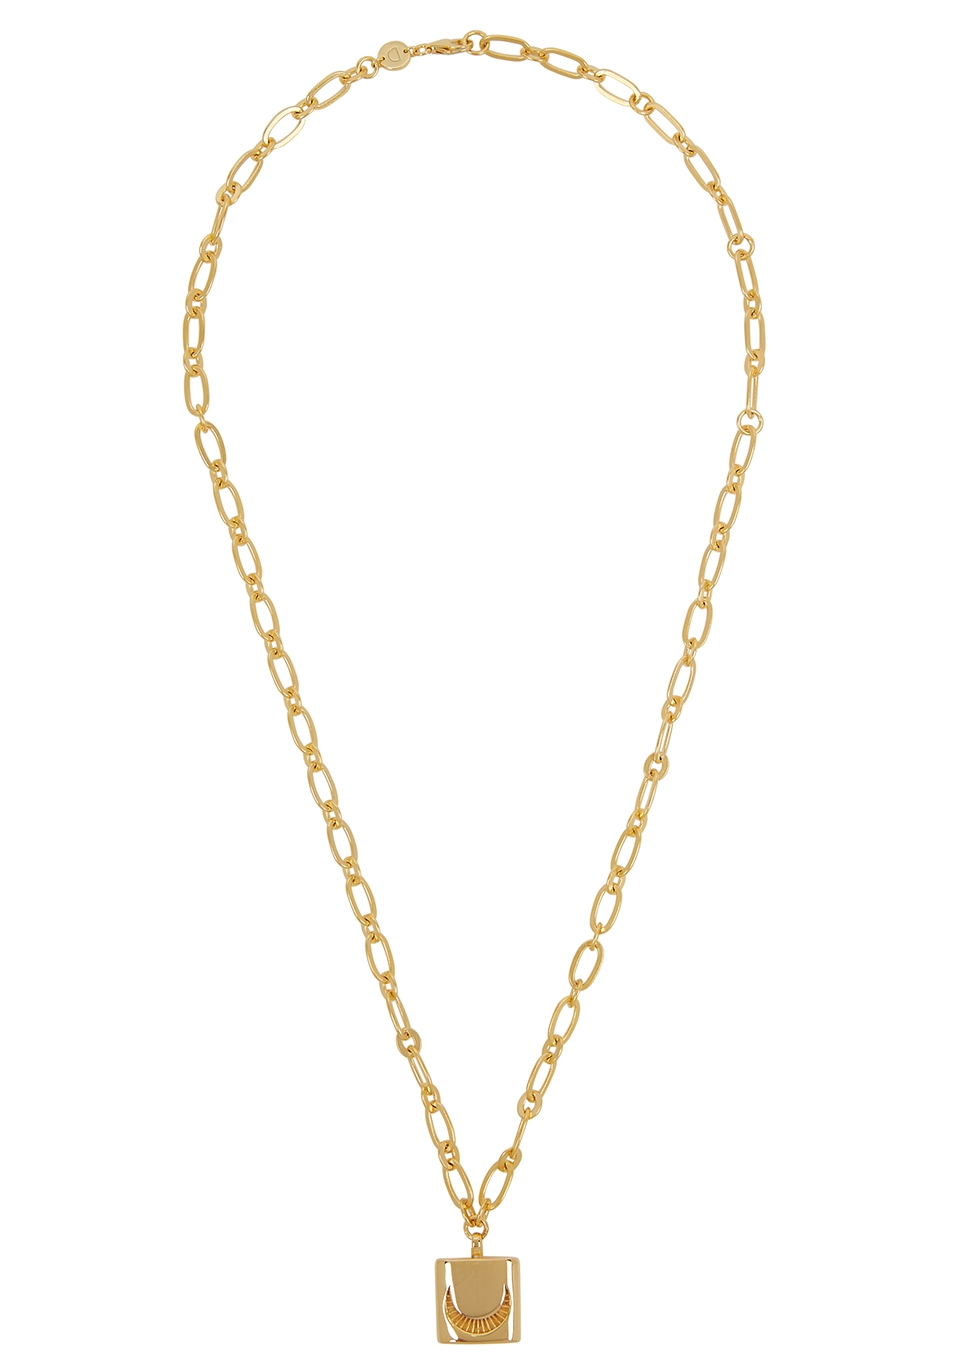 X Estee Lalonde Luna Lock 18kt gold-plated necklace